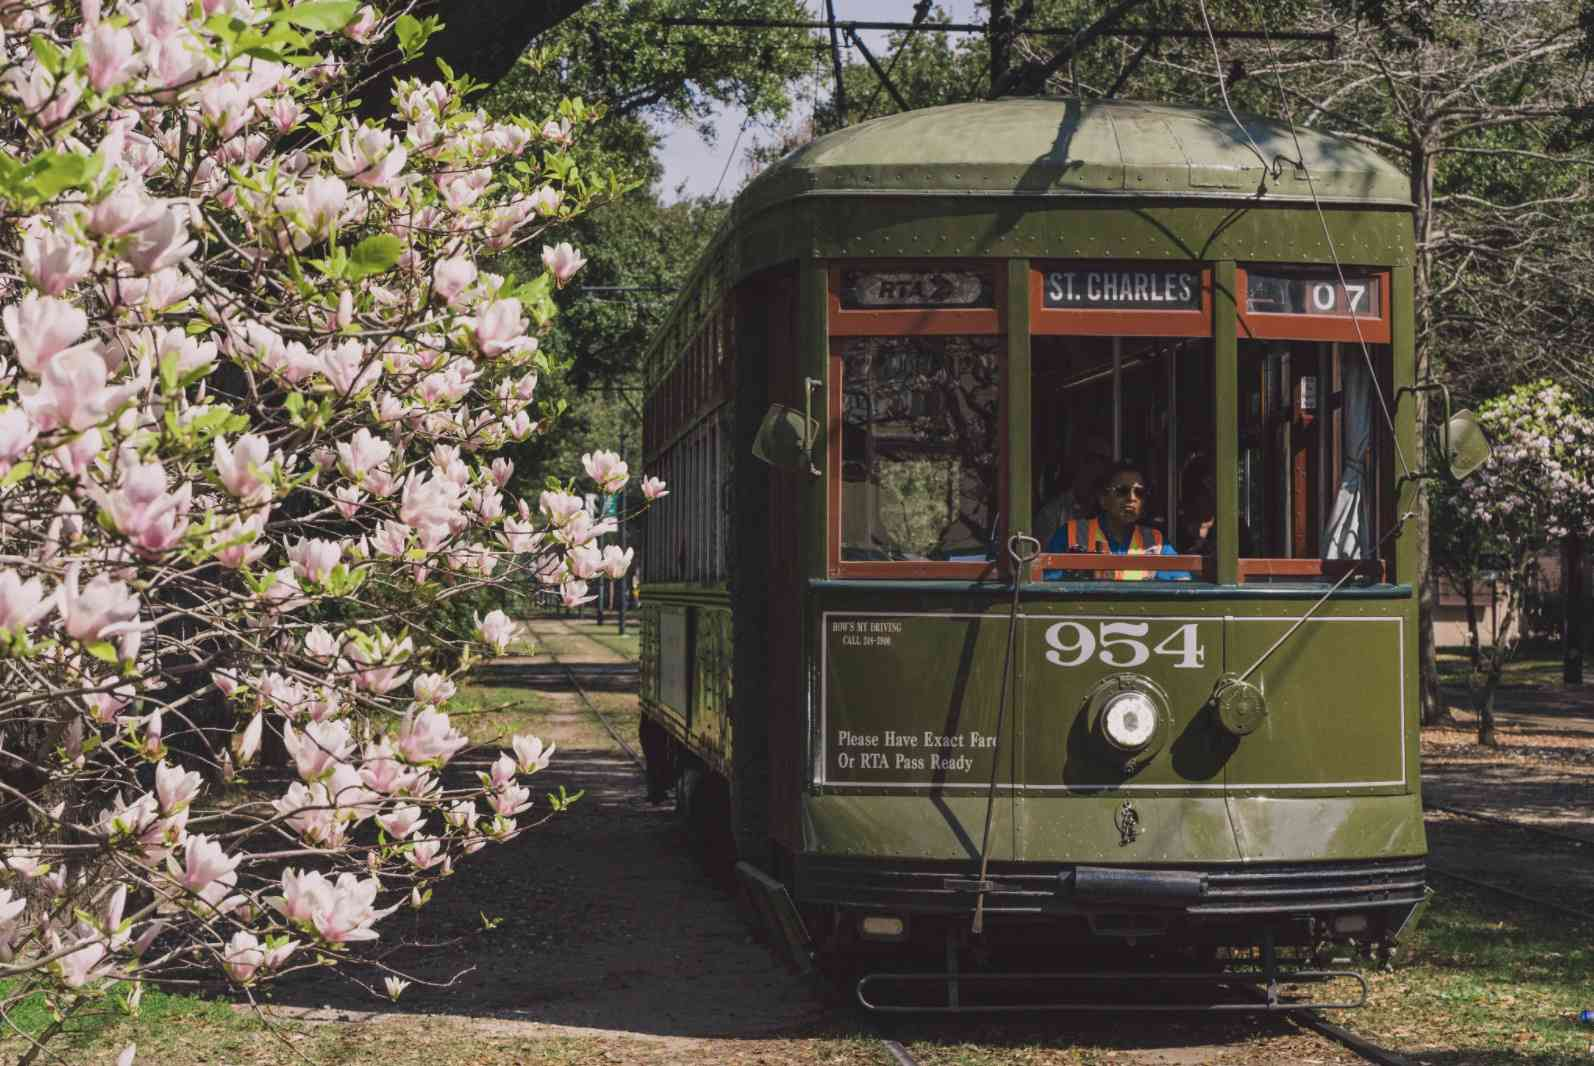 Green streetcar on Saint Charles Avenue in New Orleans